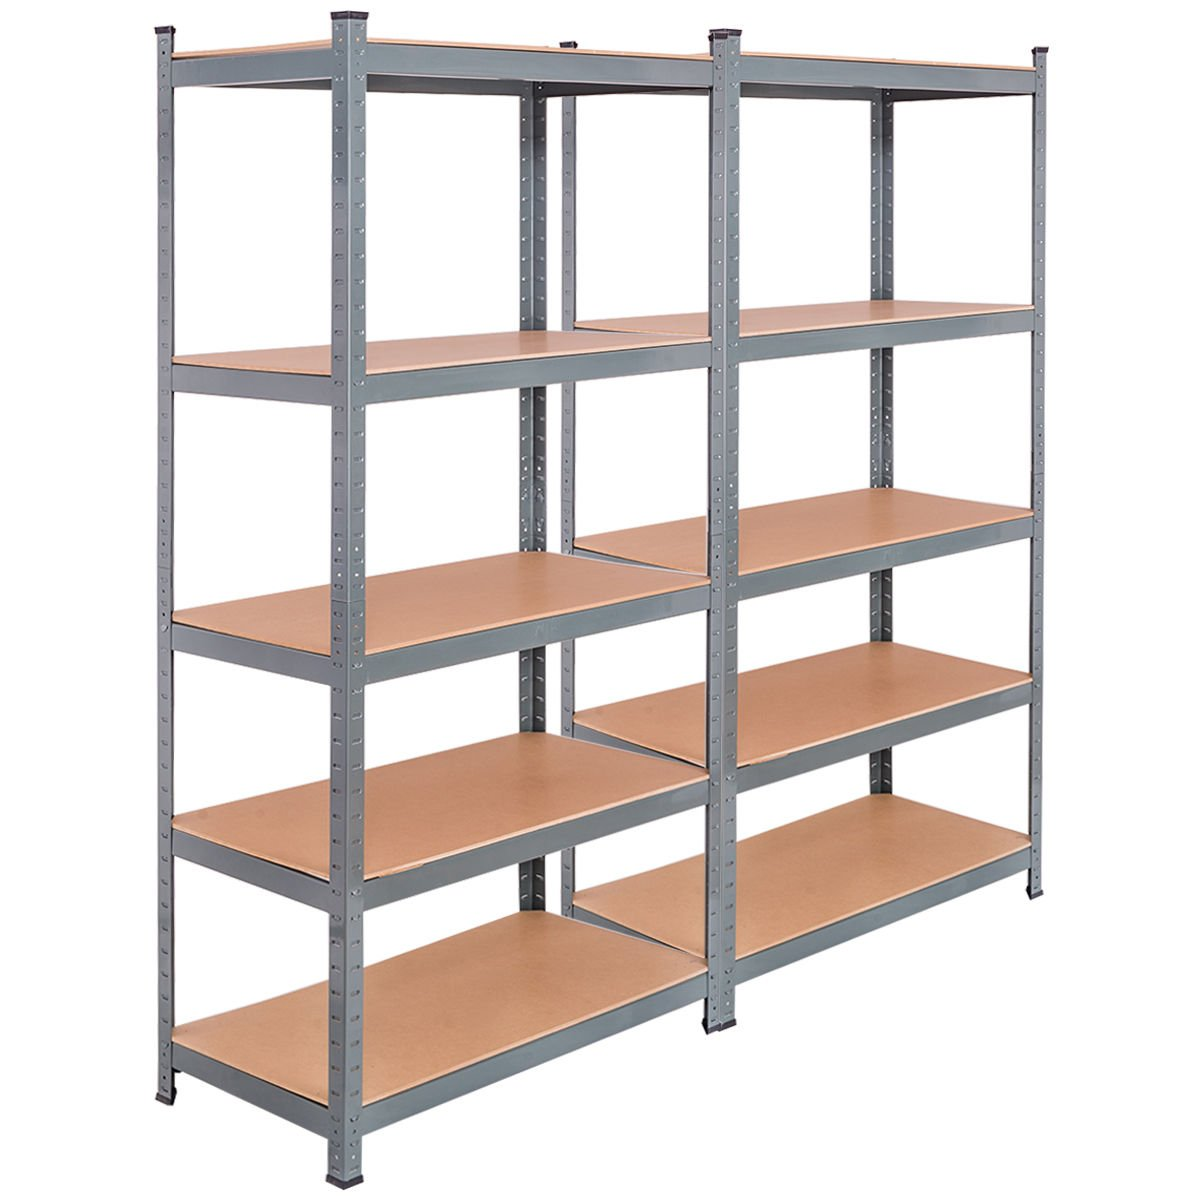 Tangkula 5-tier Storage Shelves Space-saving Storage Rack Heavy Duty Steel  Frame Organizer High Weight Capacity Multi-use Shelving Unit For Home